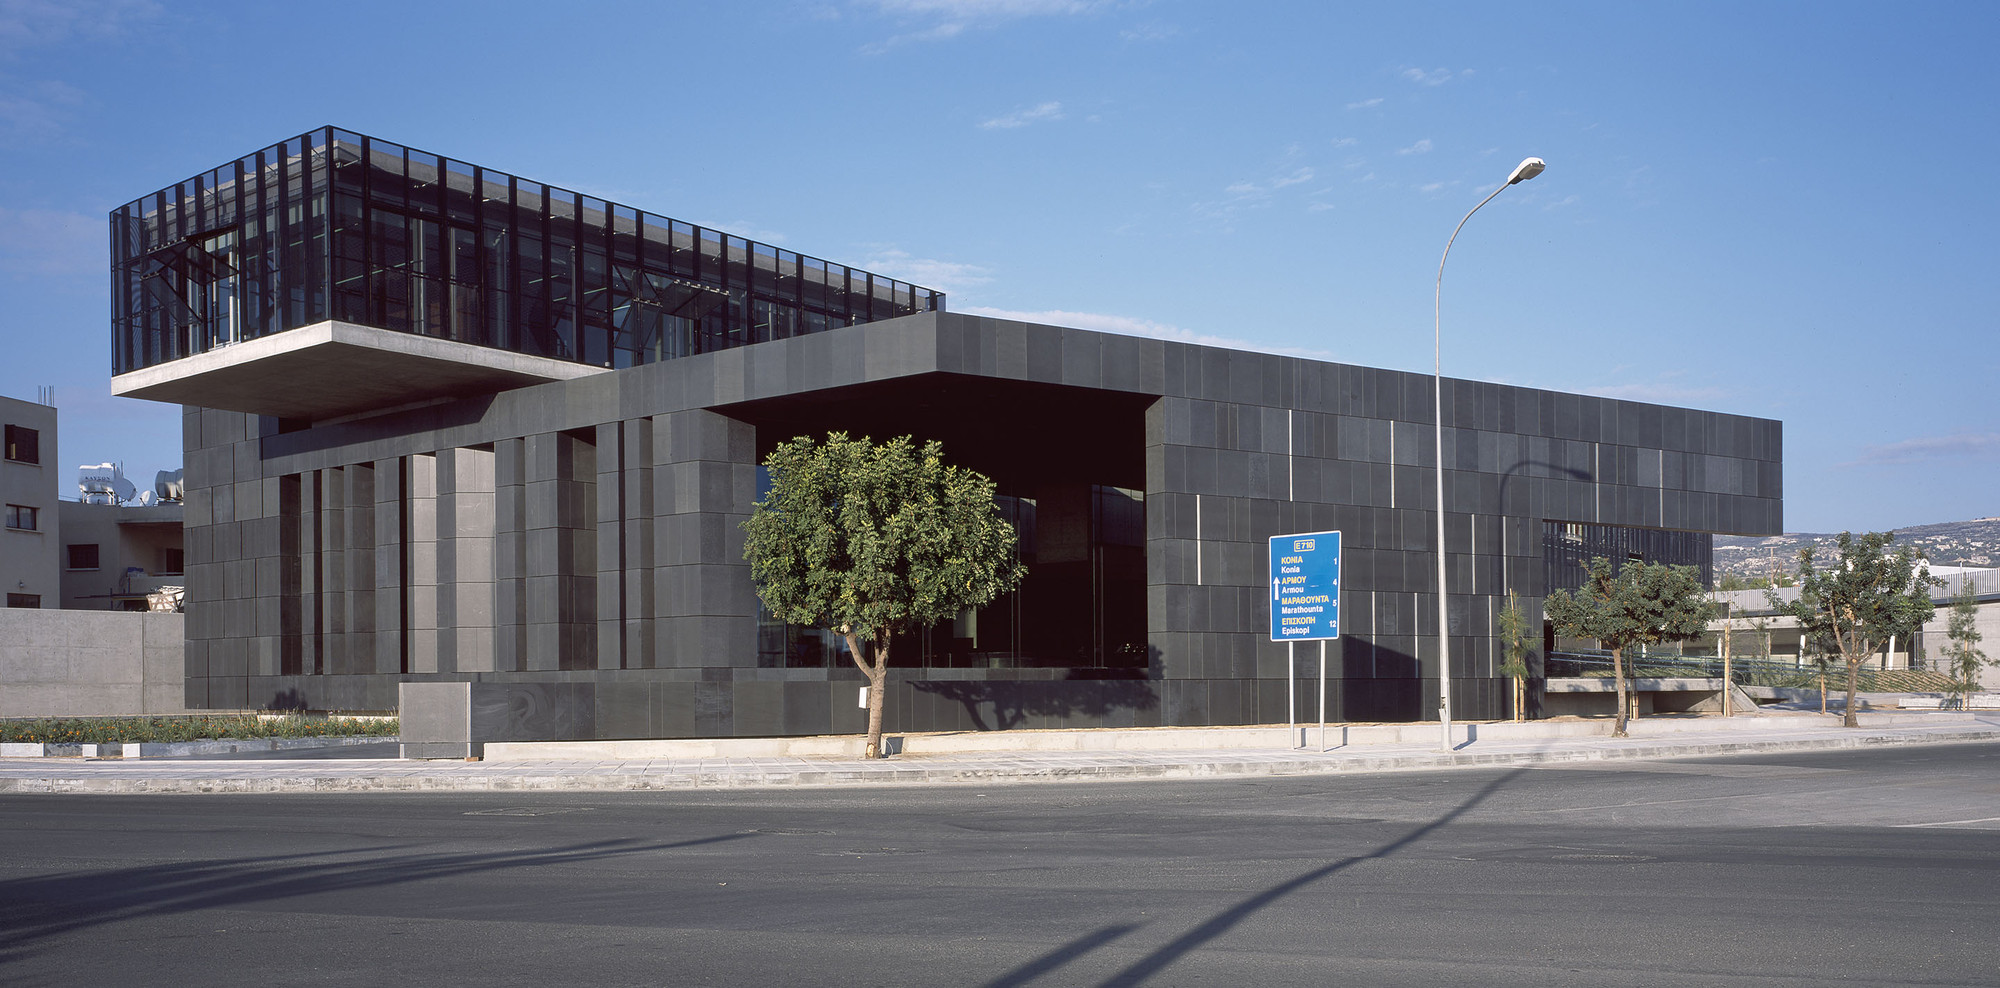 Electricity Authority of Cyprus / Eraclis Papachristou Architects, © Erieta Attali